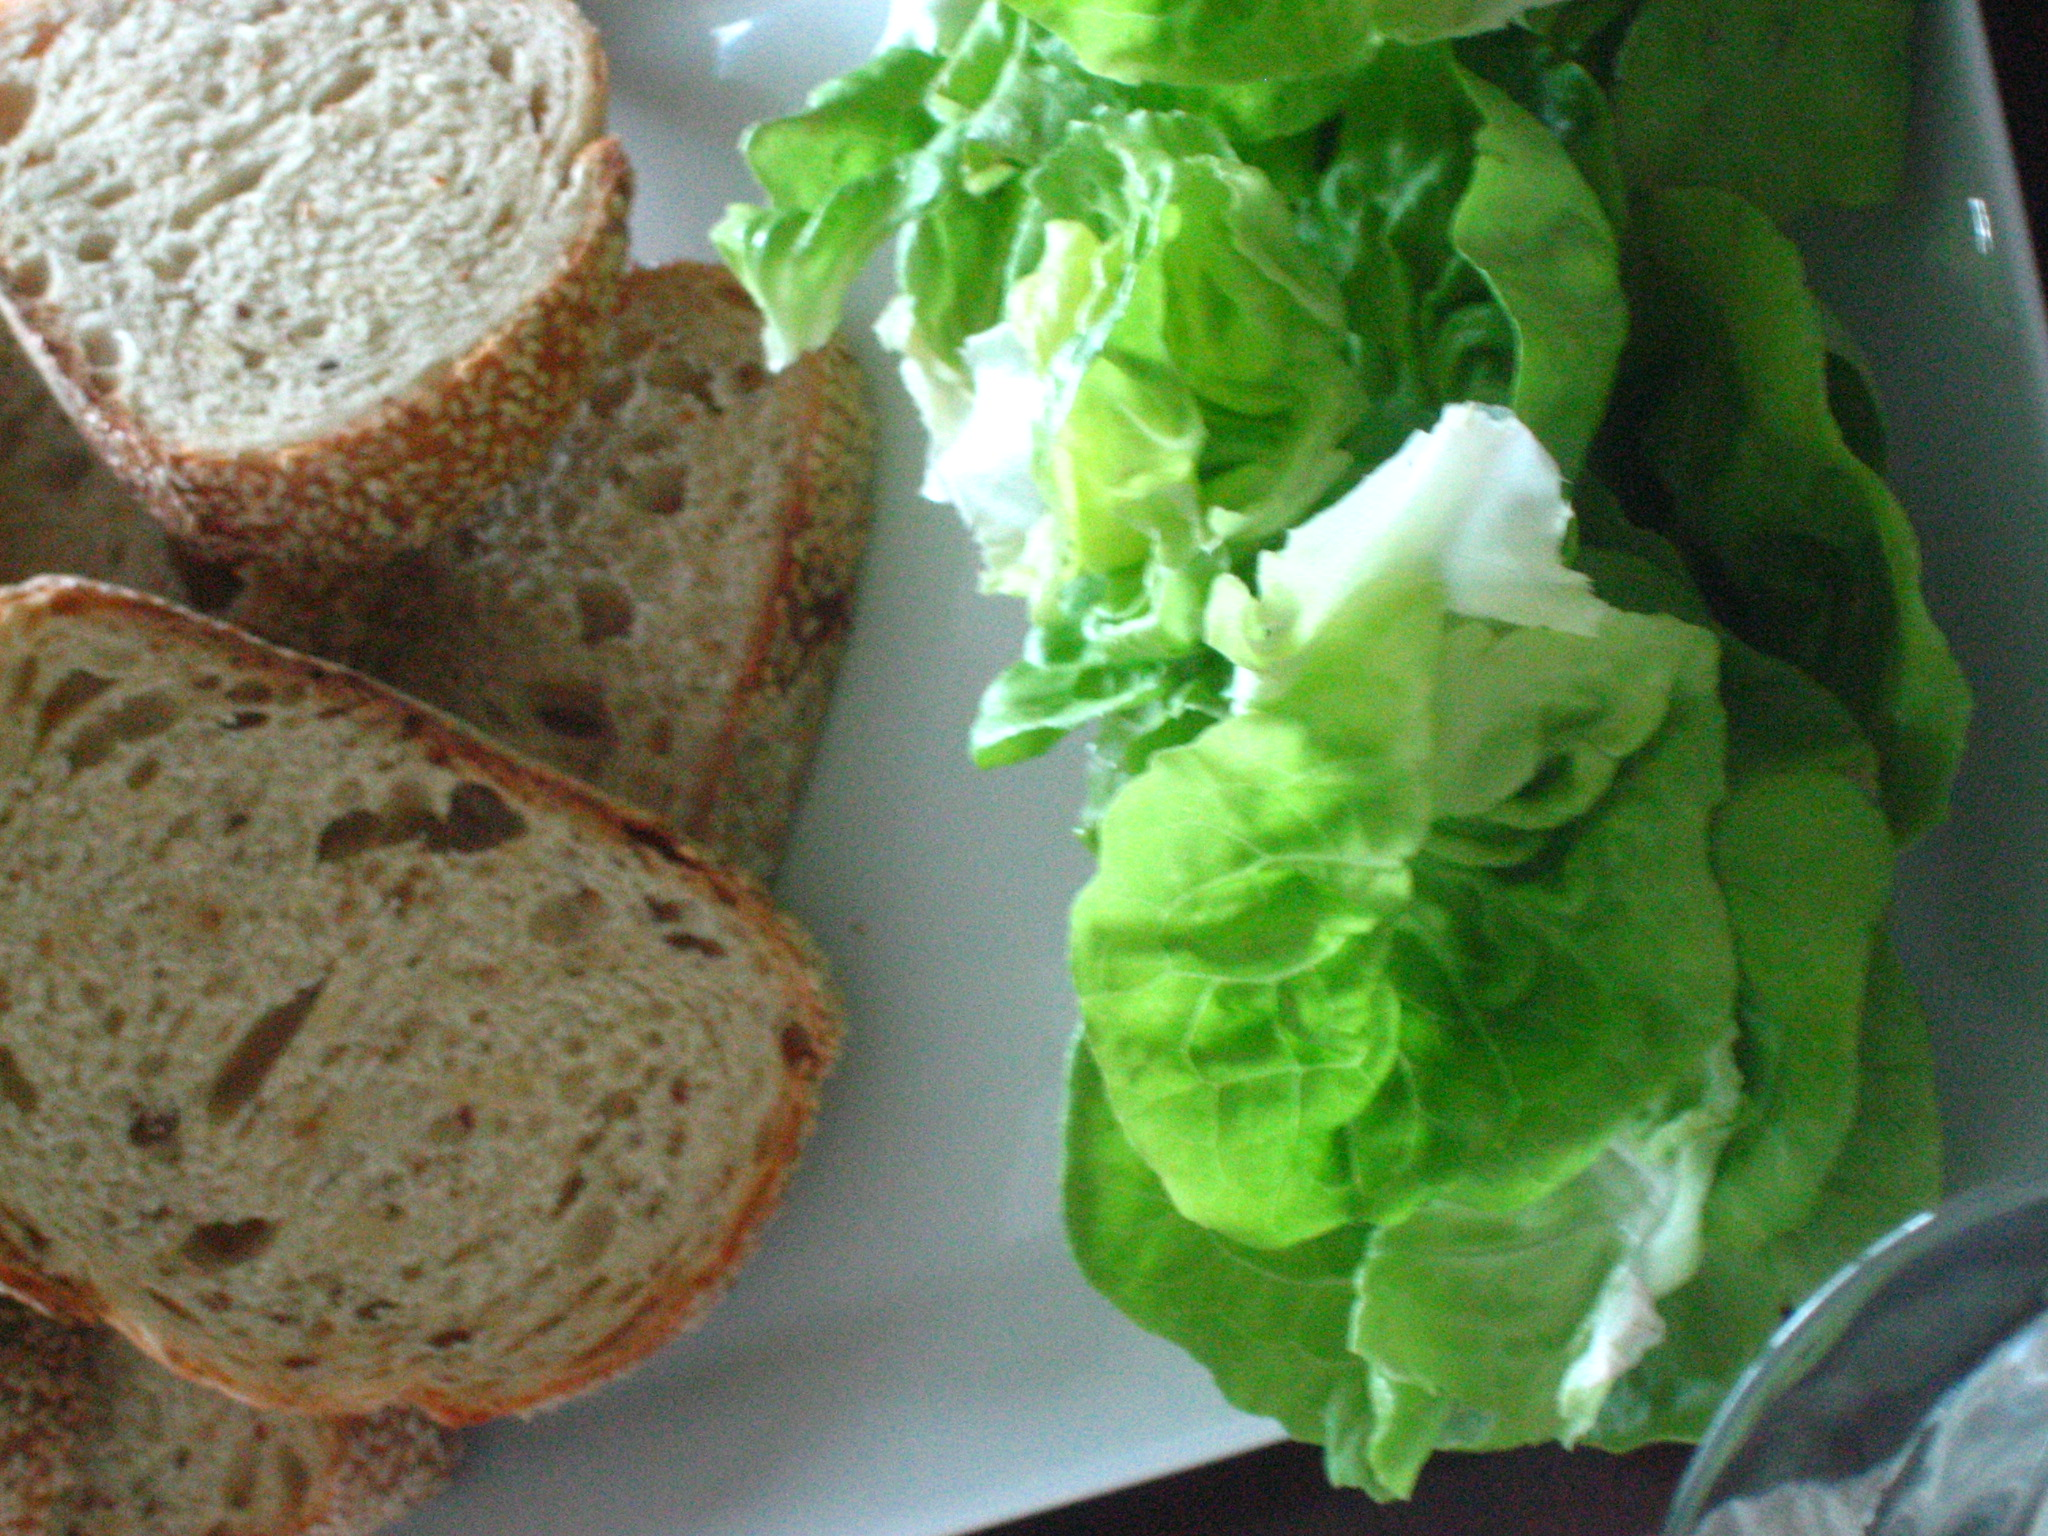 Bread and Butter (Lettuce)